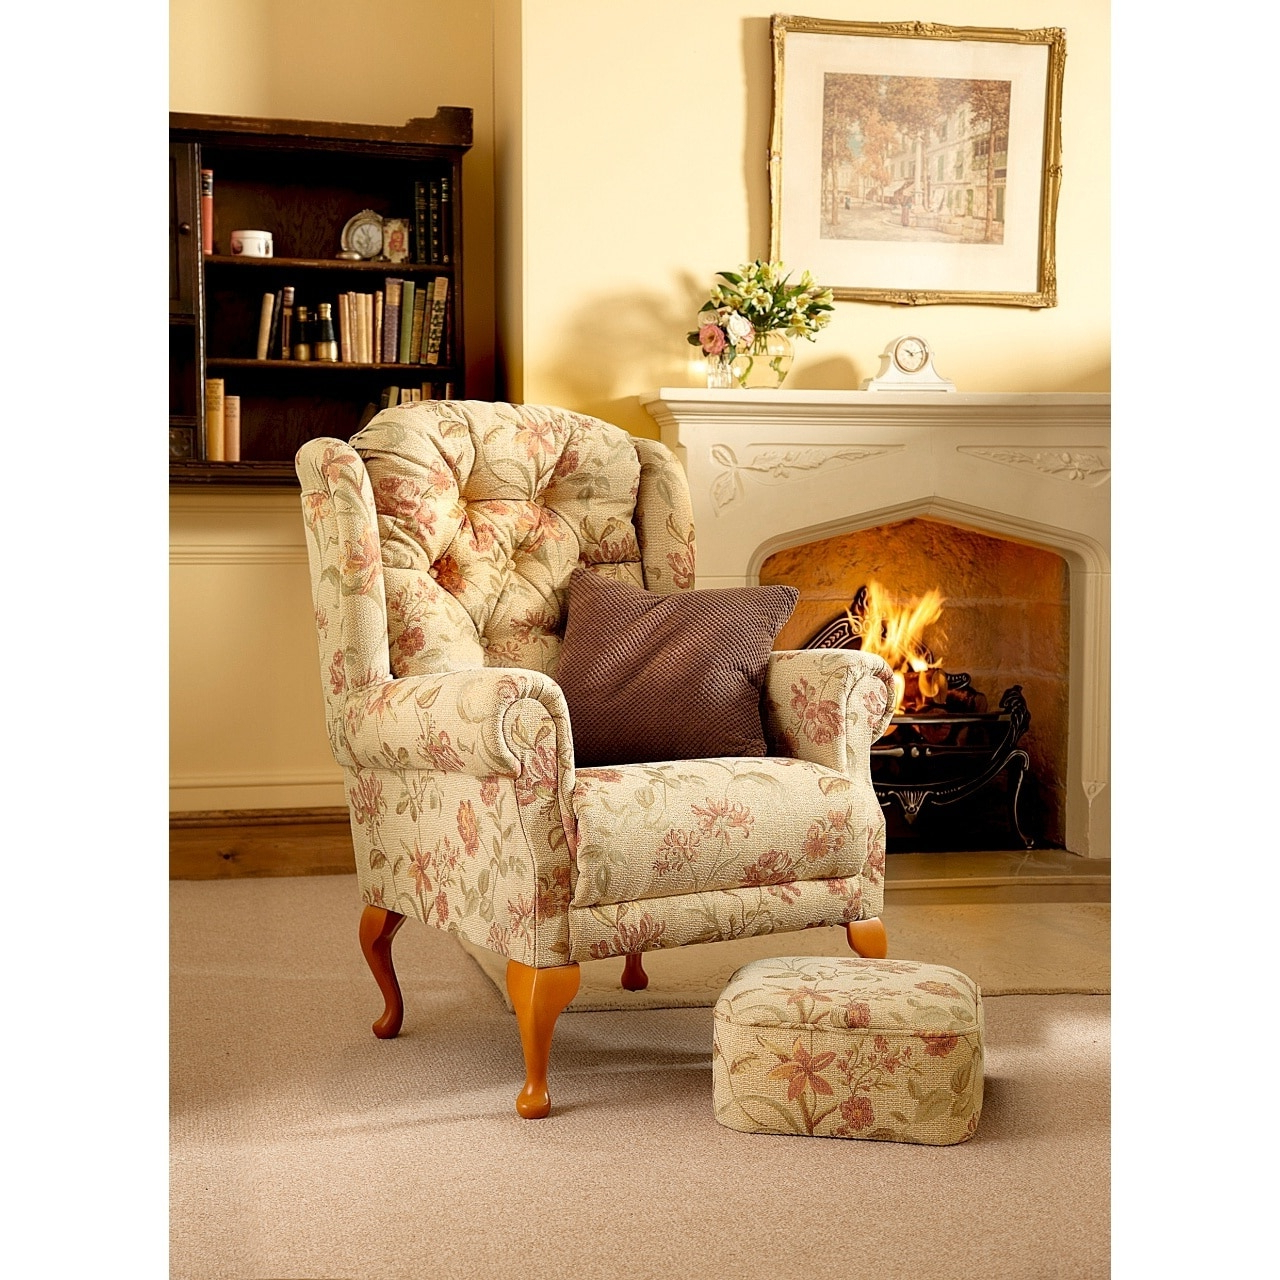 Bespoke Handmade Button Back Queen Anne Armchair With Most Popular Portmeirion Armchairs (View 6 of 20)